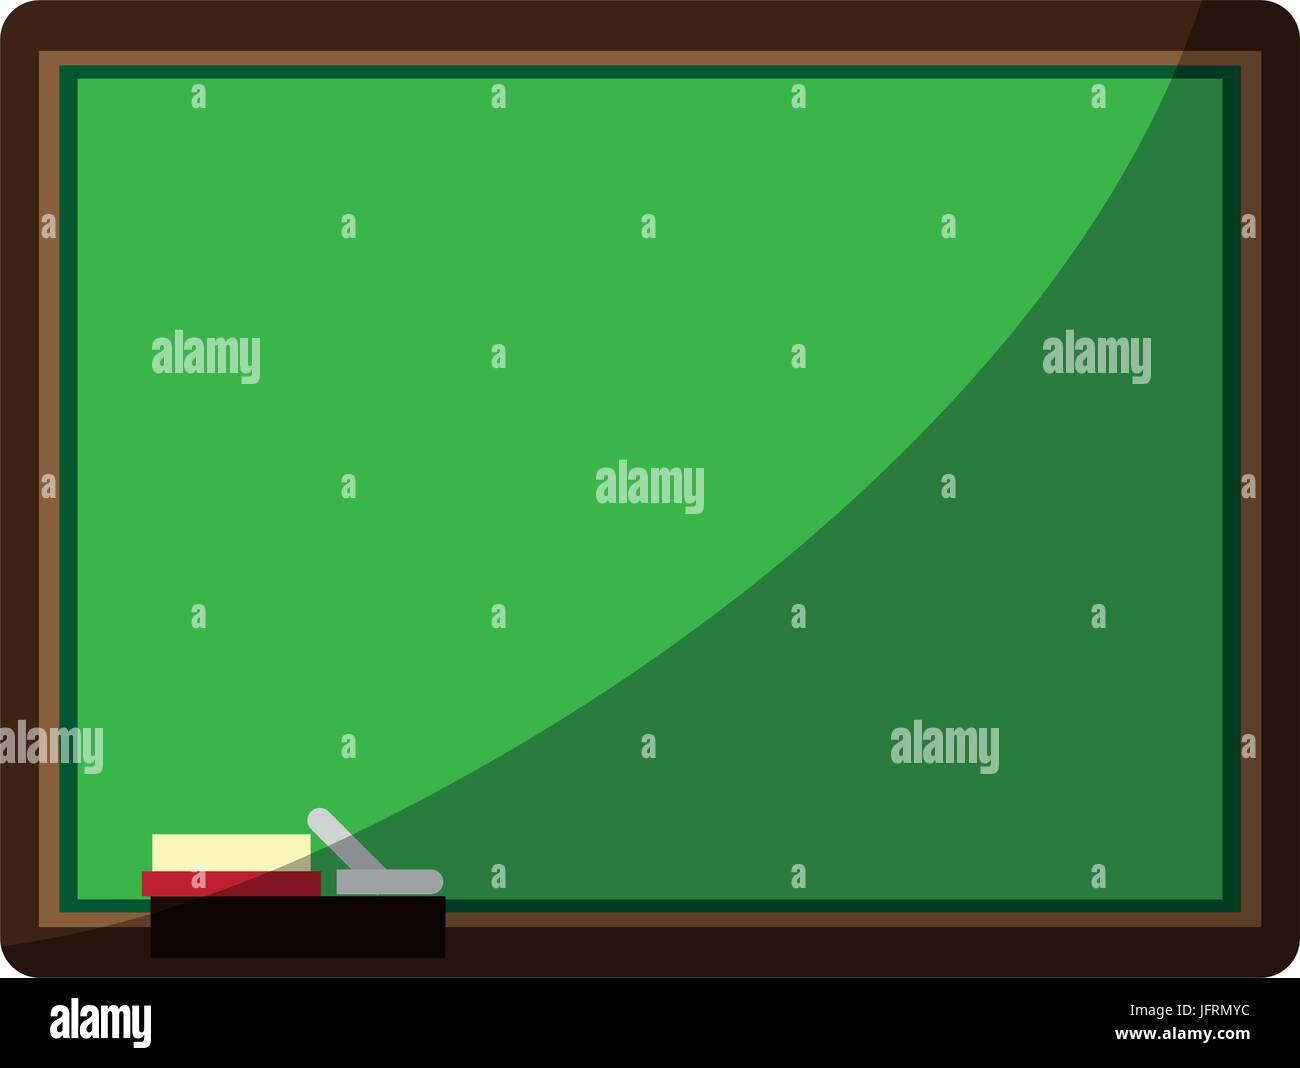 Chalk Board With School Supply Icon Image Vector Illustration Design - Pool table chalk board